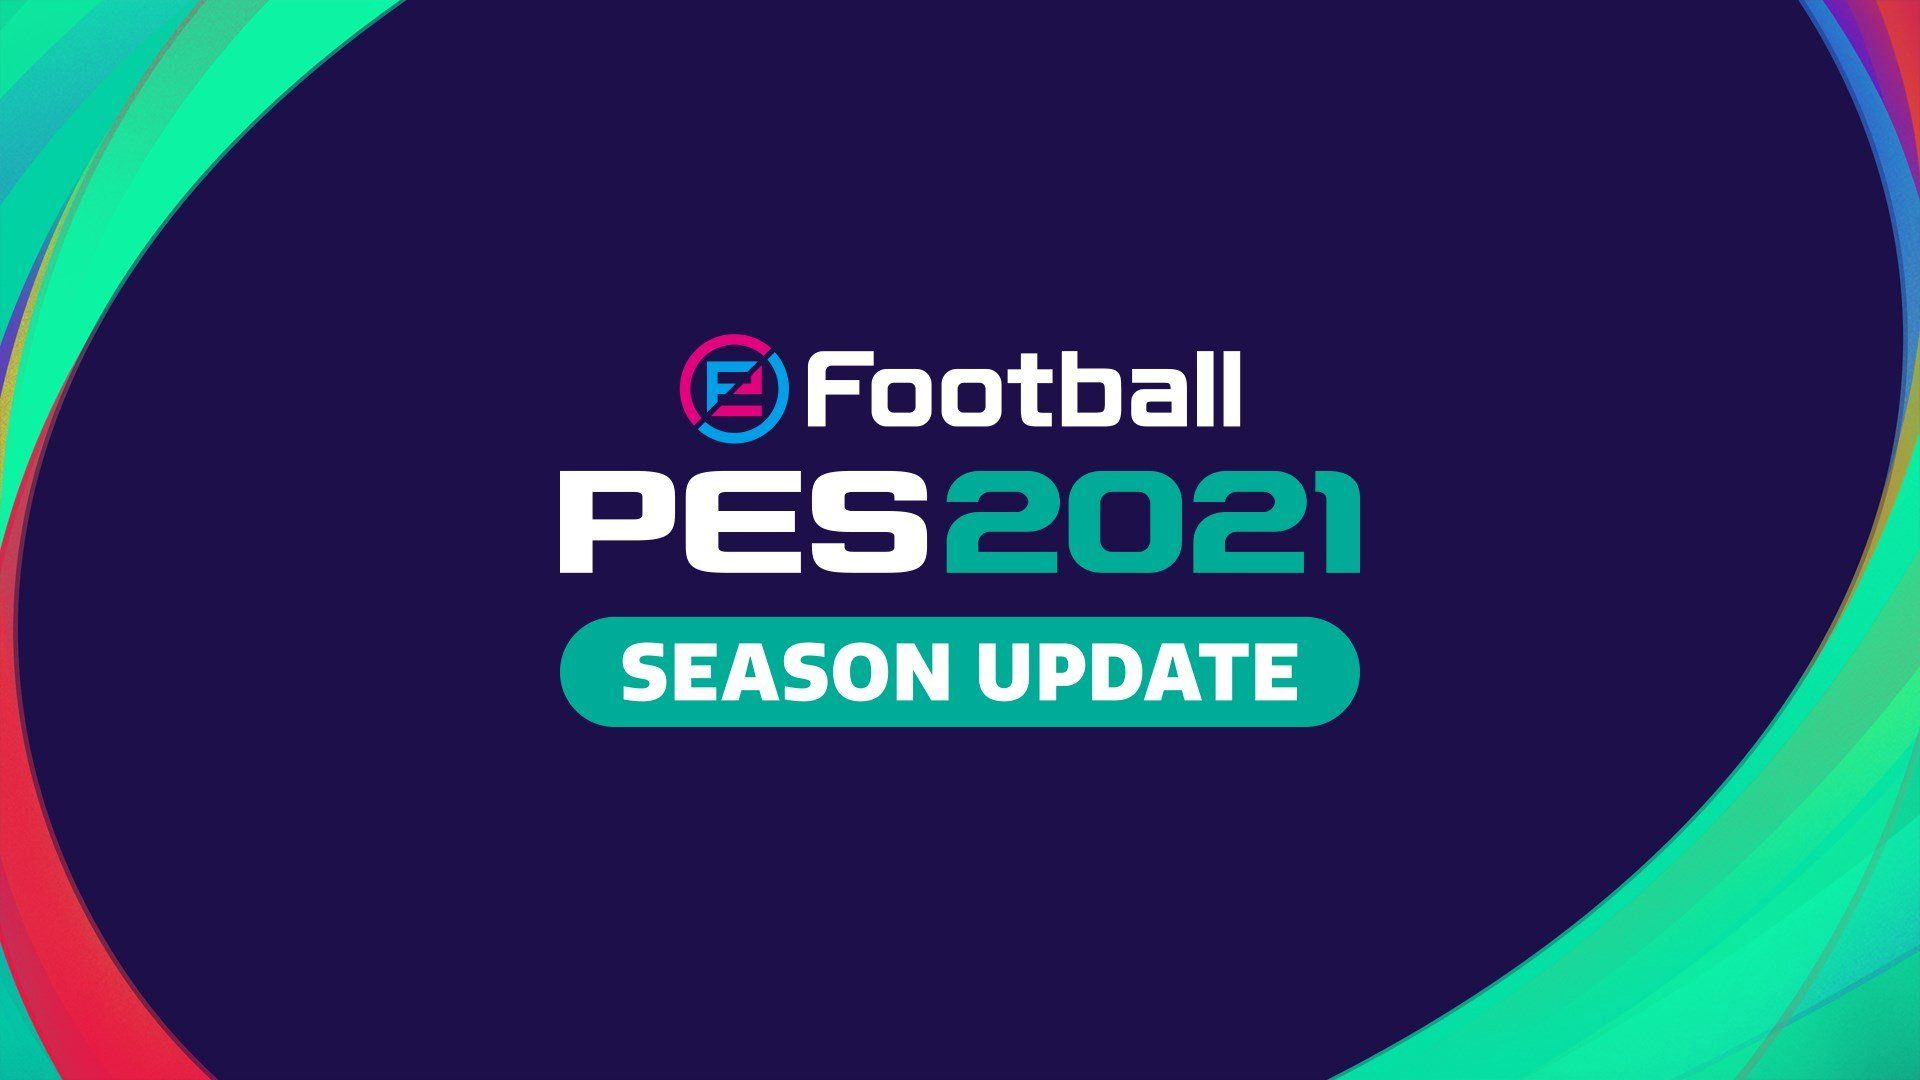 pes 2021 wallpapers top free pes 2021 backgrounds wallpaperaccess pes 2021 wallpapers top free pes 2021